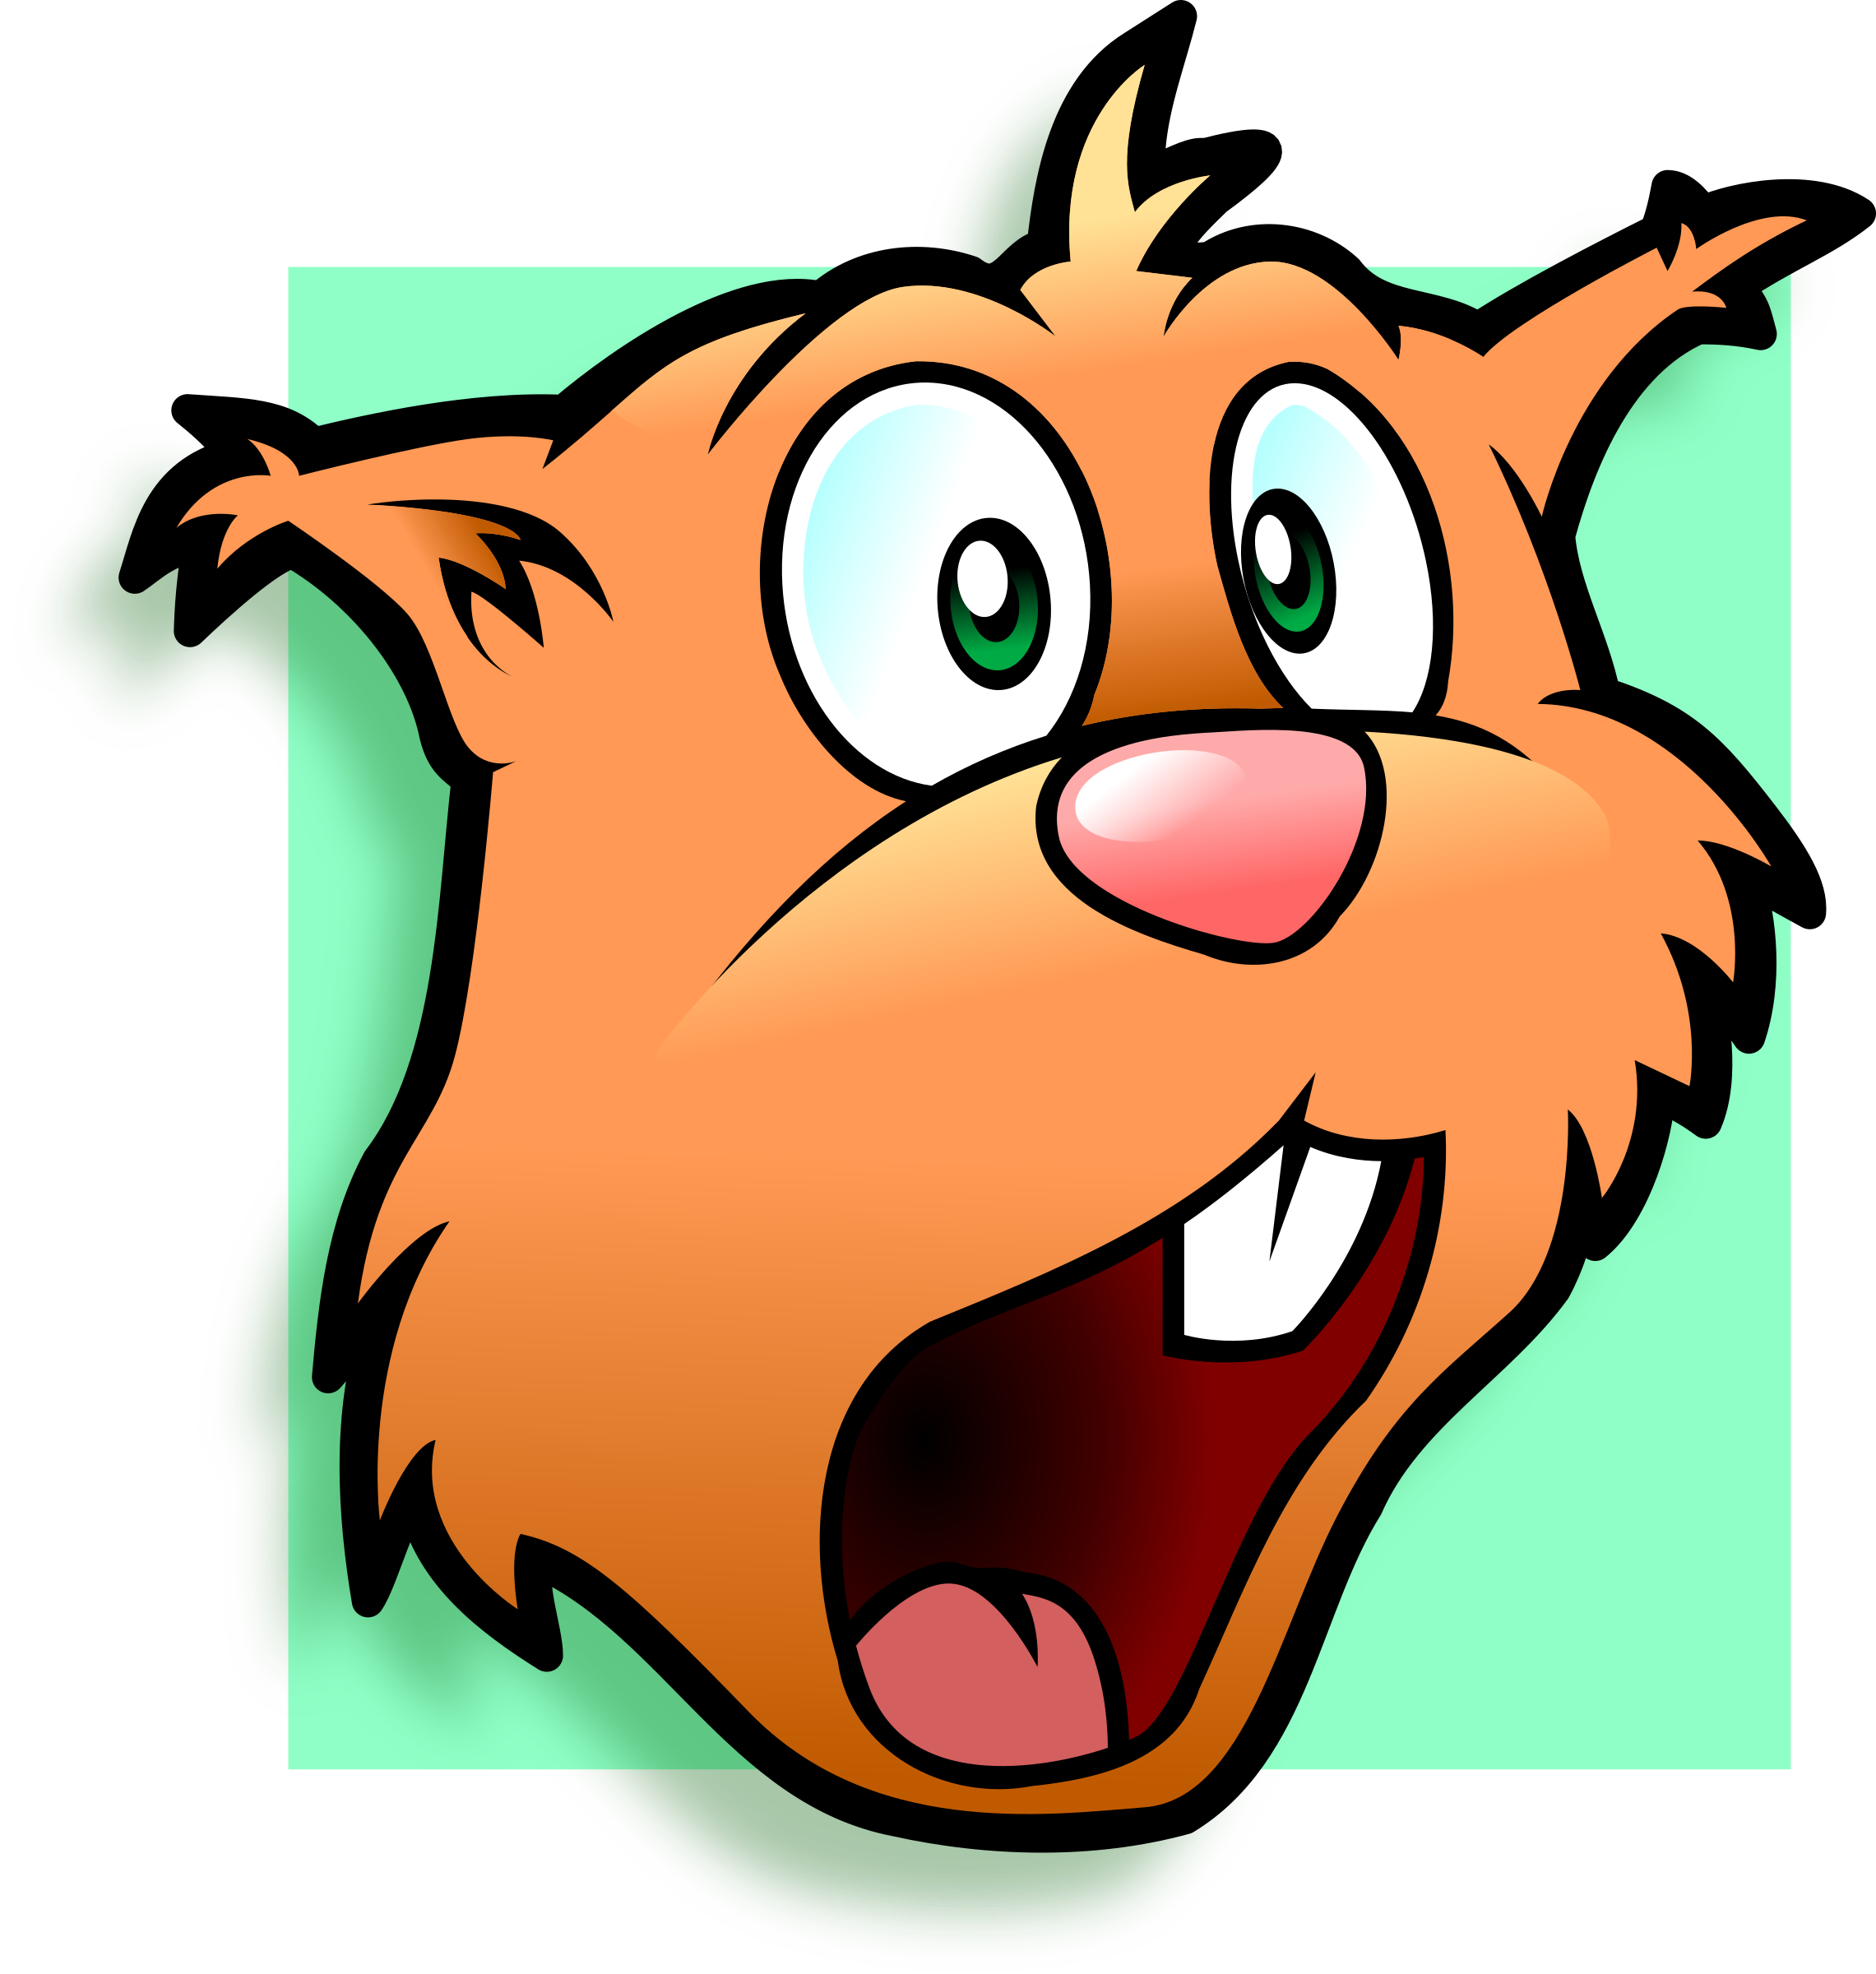 Amazed chipmunk avatar by Schade